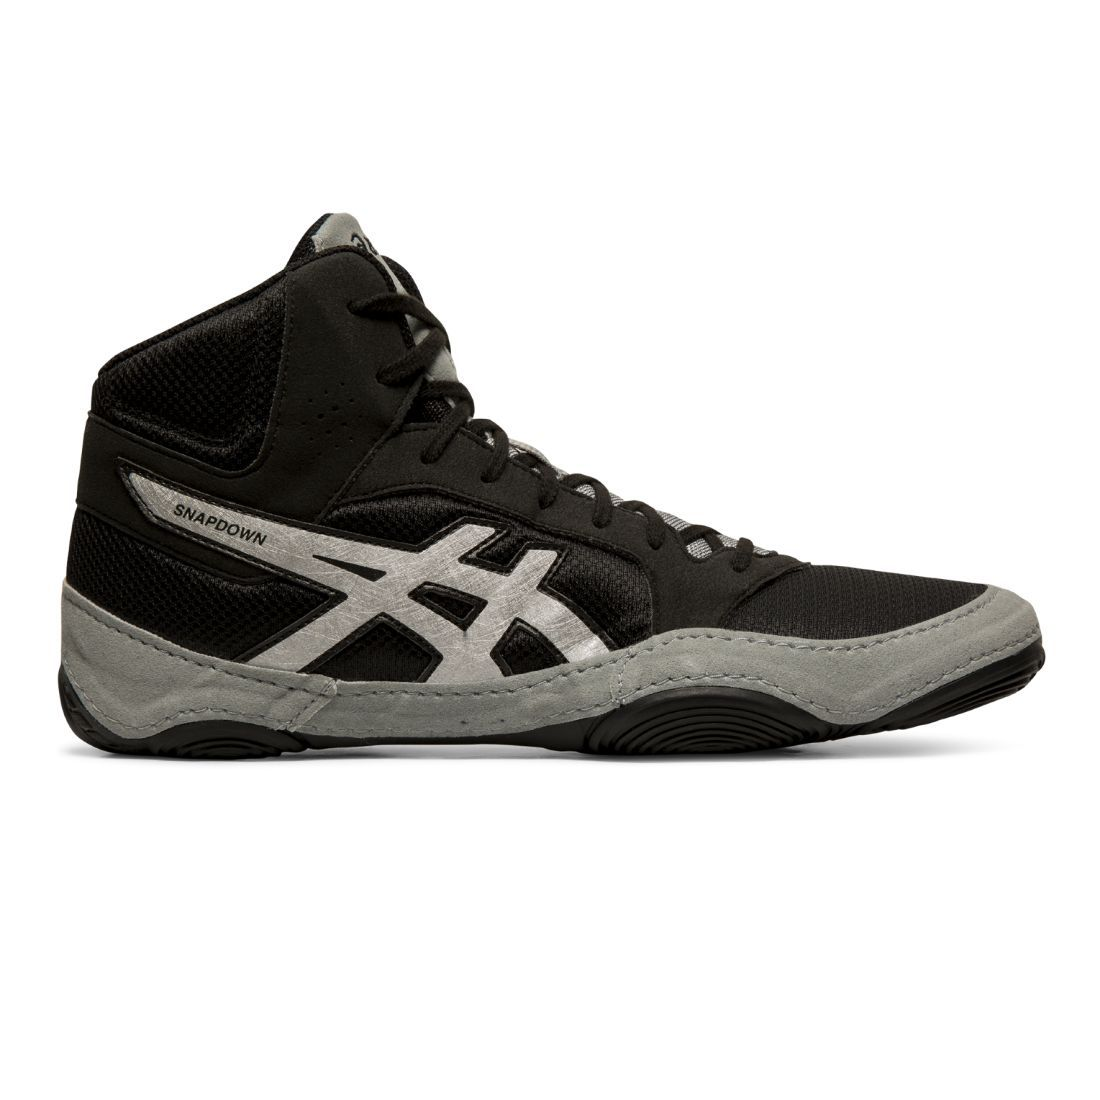 Asics Wrestling Shoes | Asics wrestling shoes, Wrestling